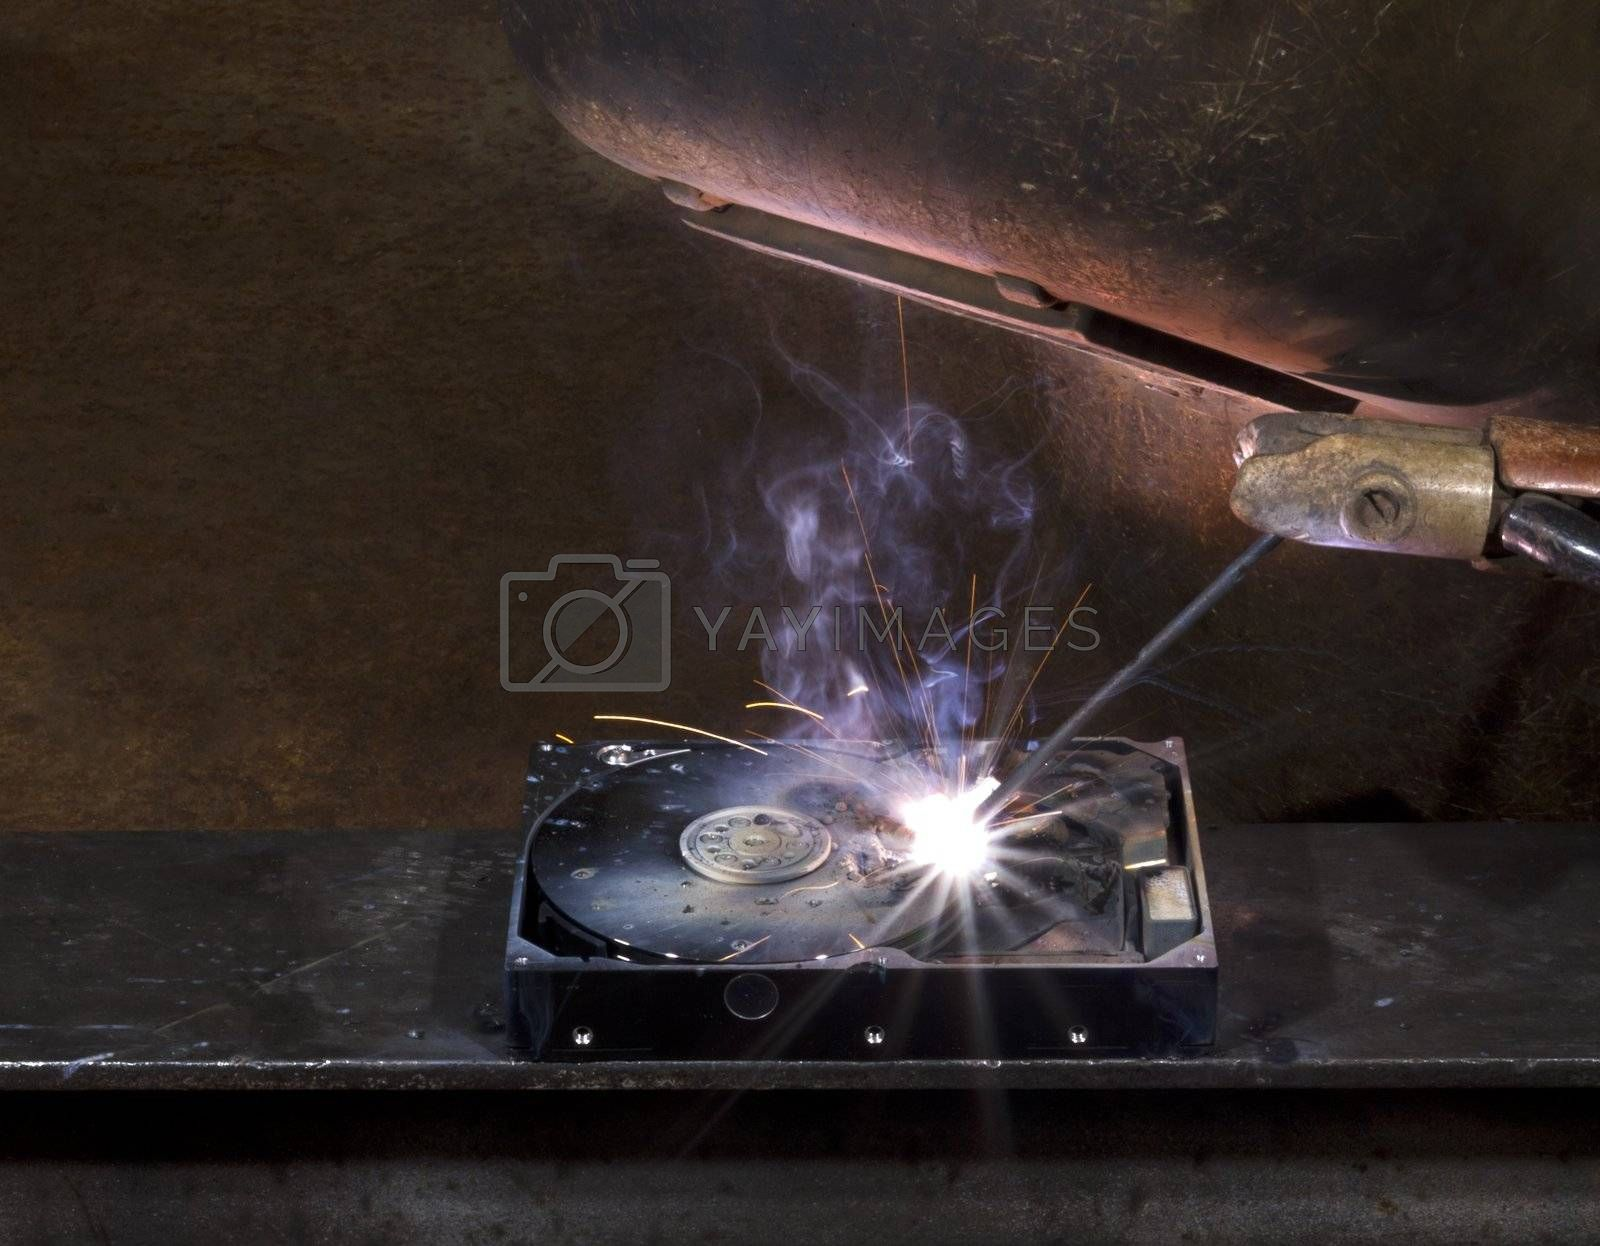 repairing a defect hard disk with welding apparatus. Protective shield and smoke on rusty background